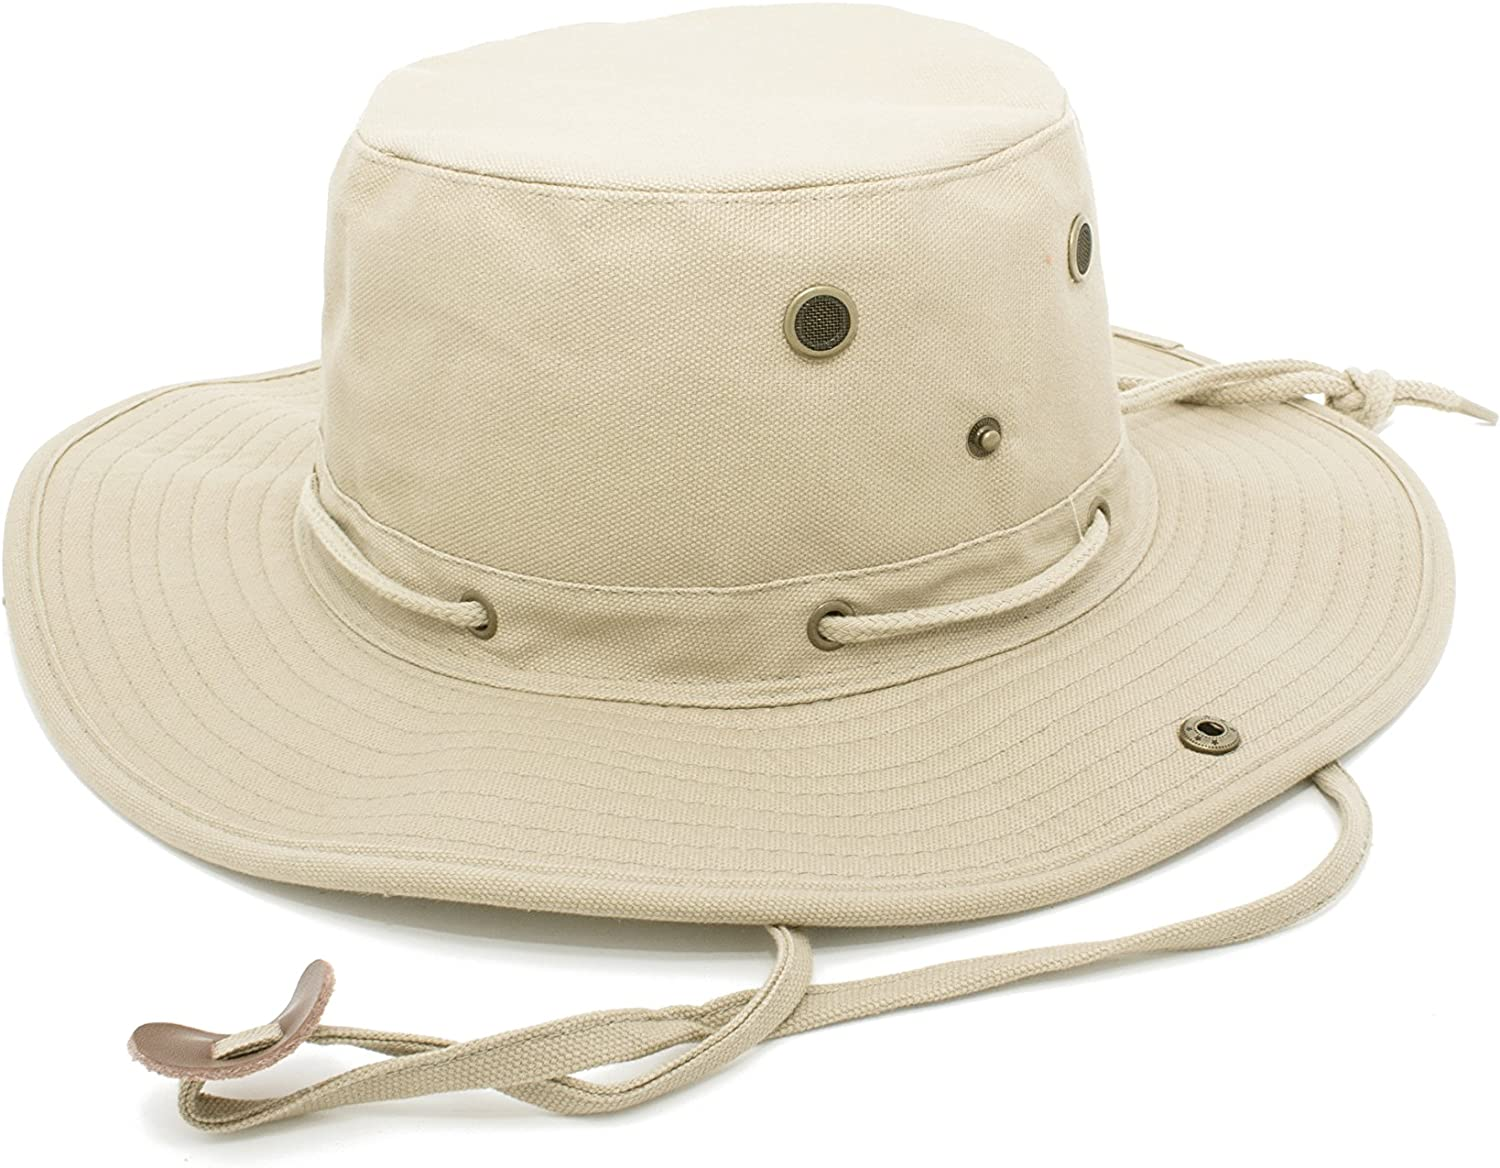 Fenside Country Clothing Cotton Wide Brim Safari Sun Hat with Side Vents /& Neck Strap Unisex